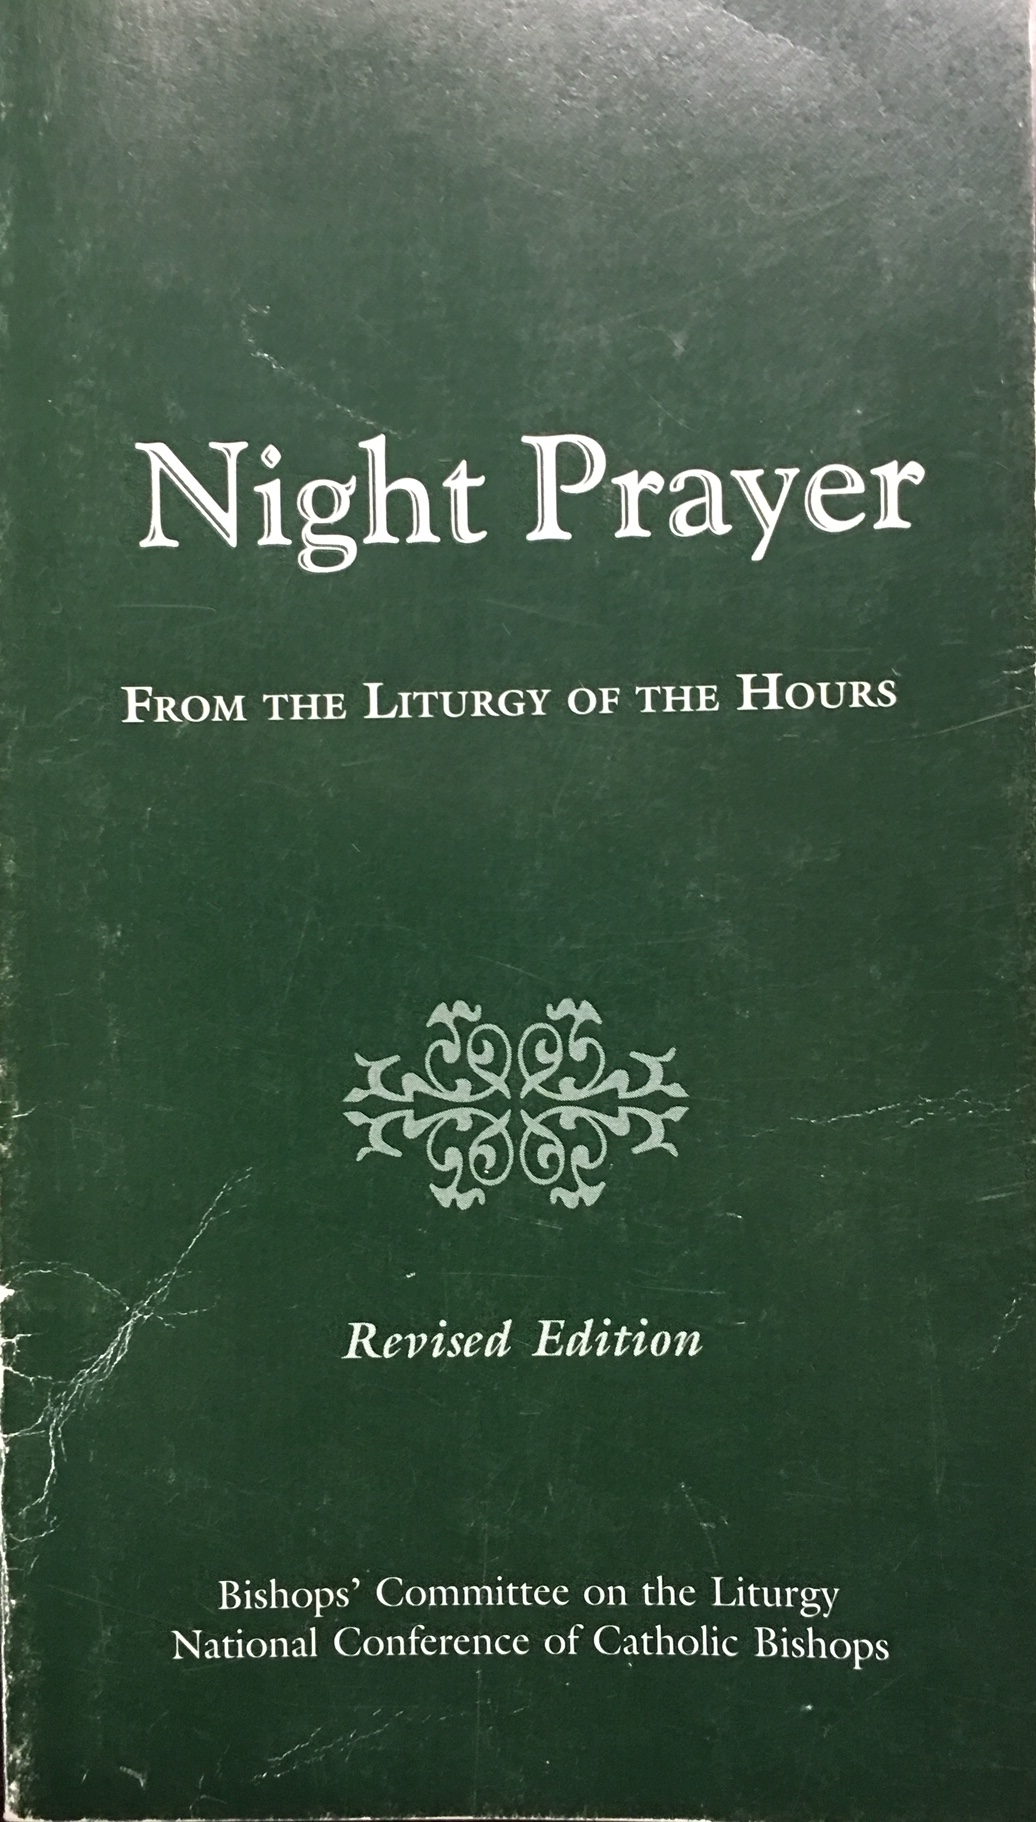 Image for Night Prayer - From the Liturgy of the Hours (Revised Edition)